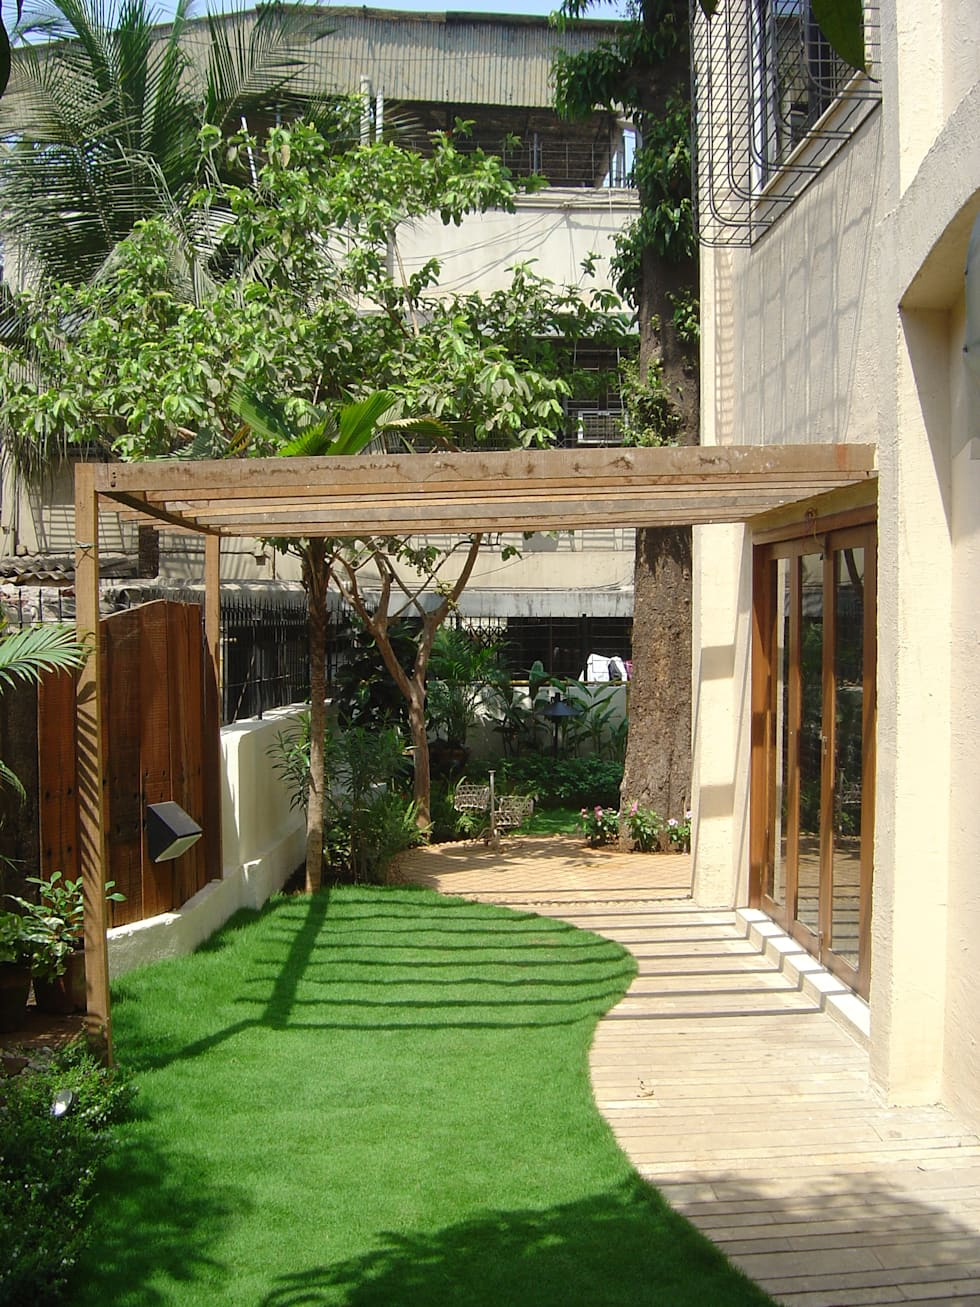 Garden Landscape For Bungalow At Chembur Tropical By Land Design Architects